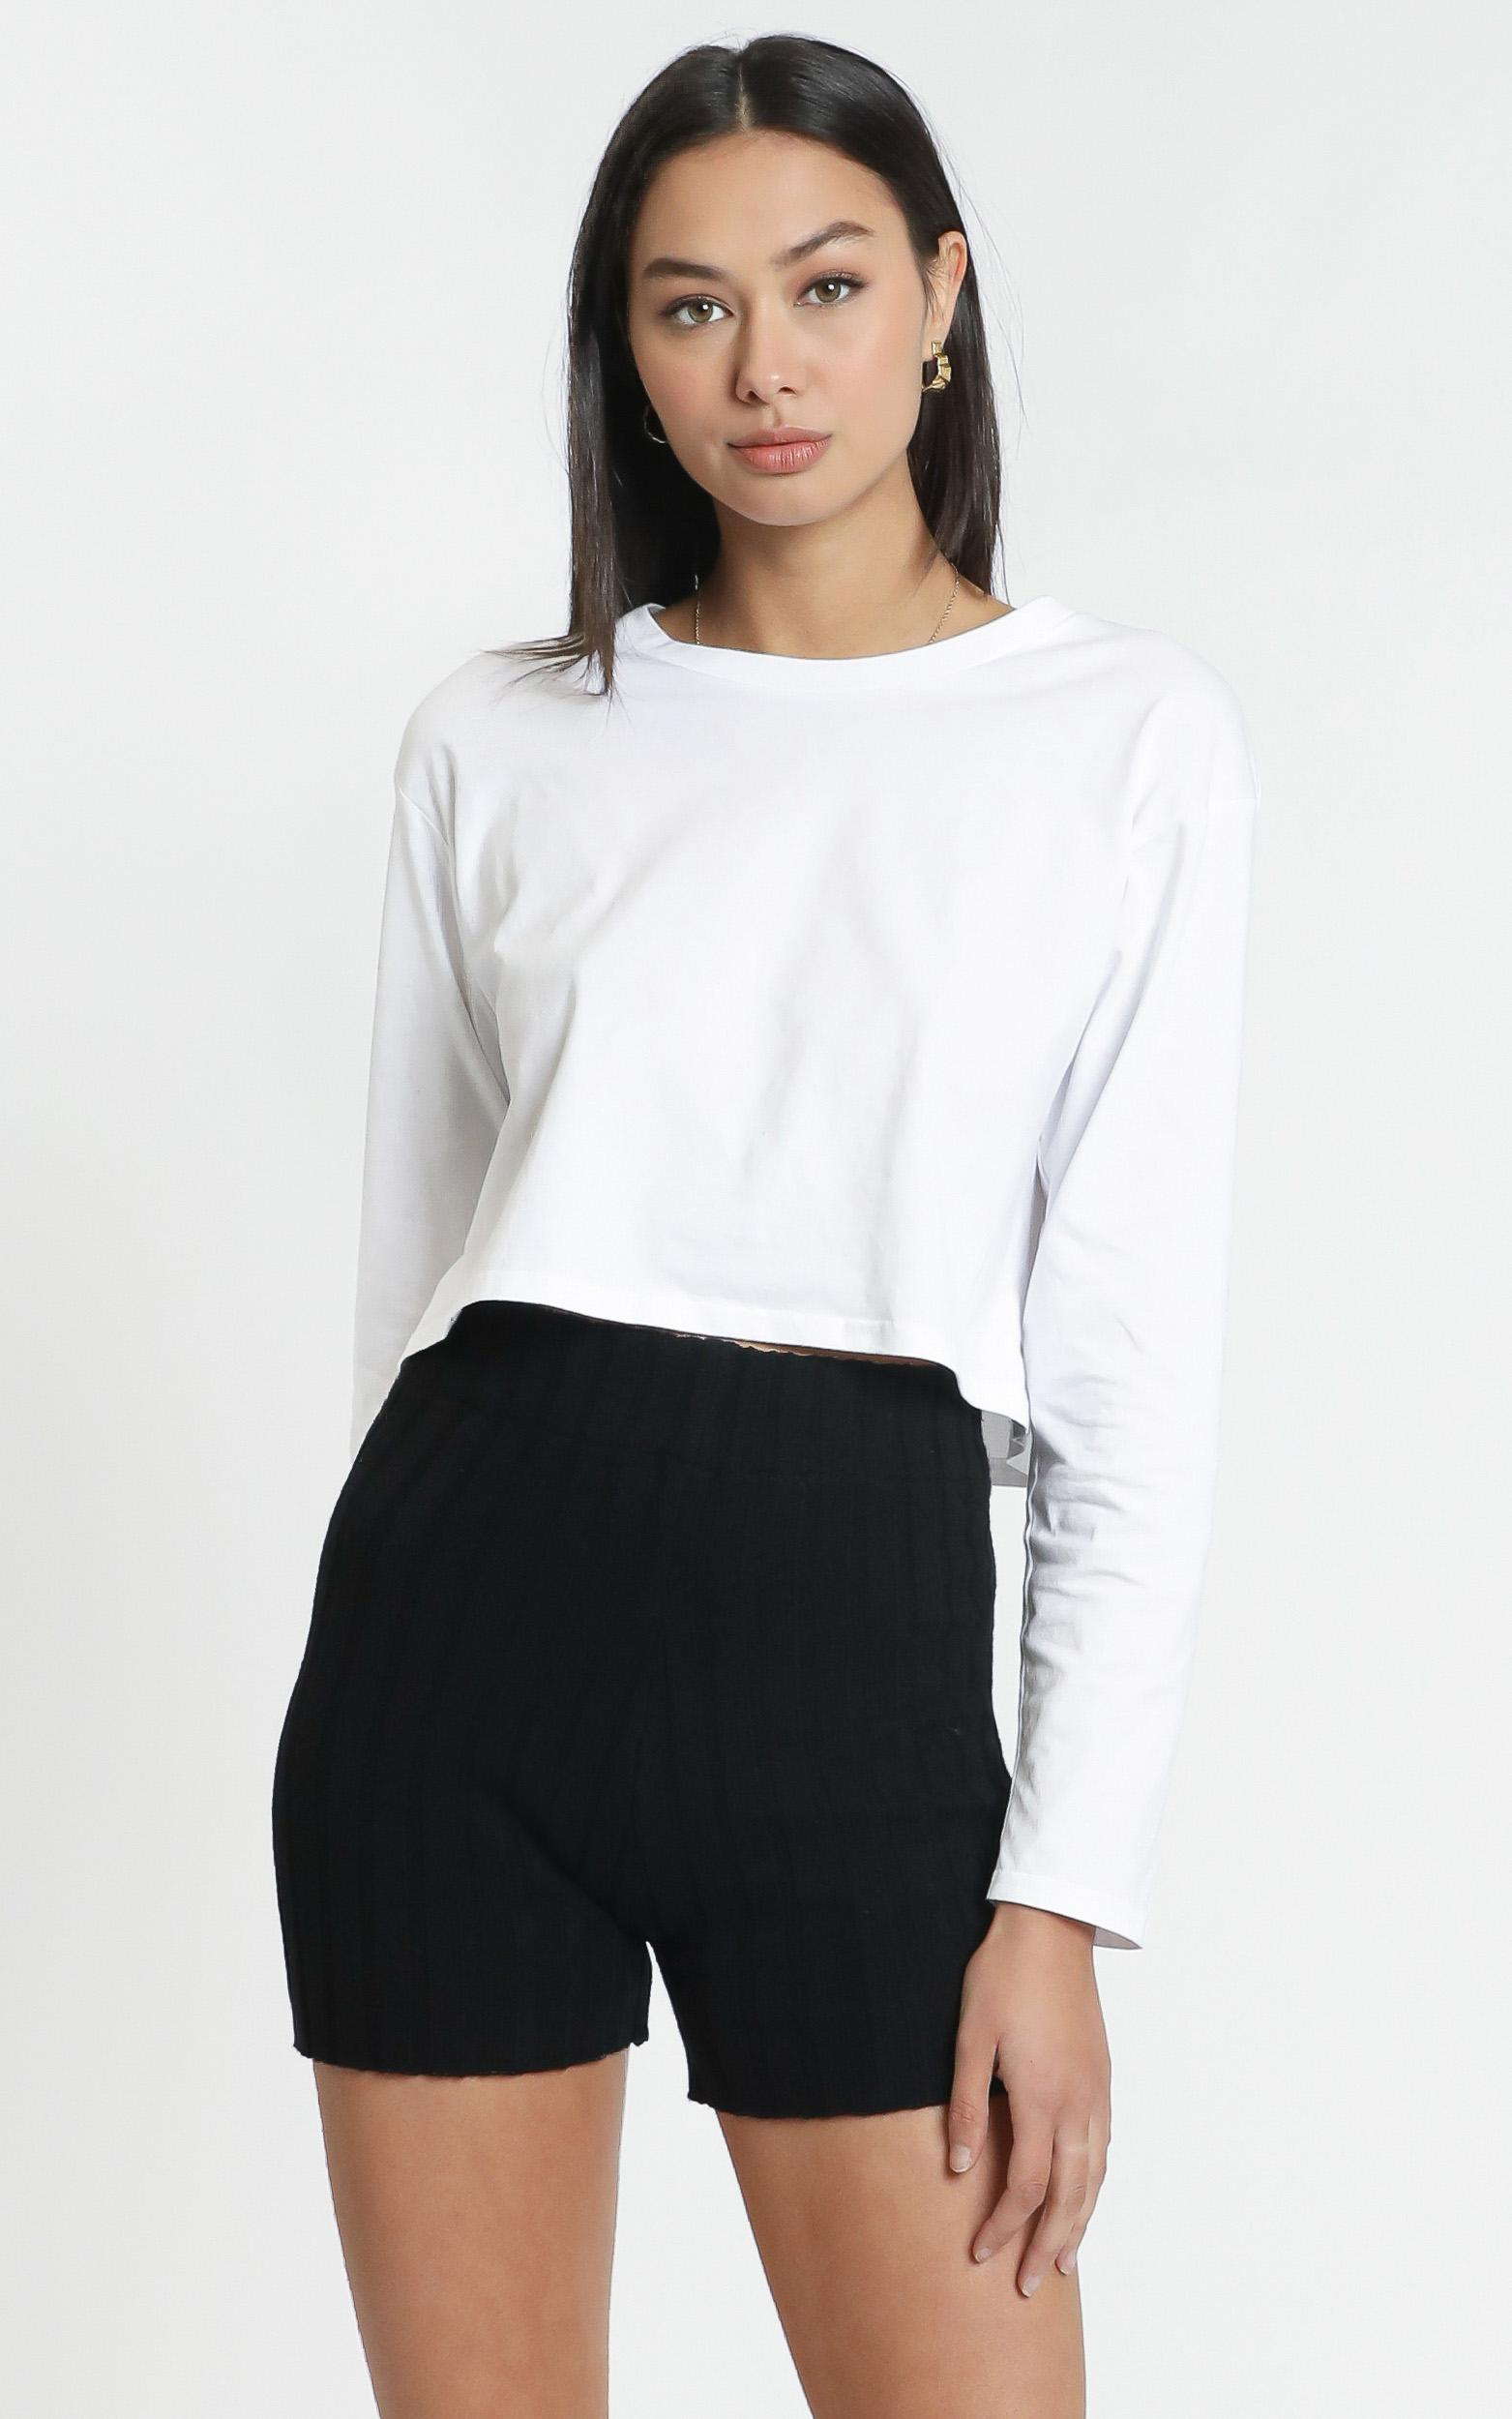 Vera Knit Shorts in Black - L, BLK1, hi-res image number null